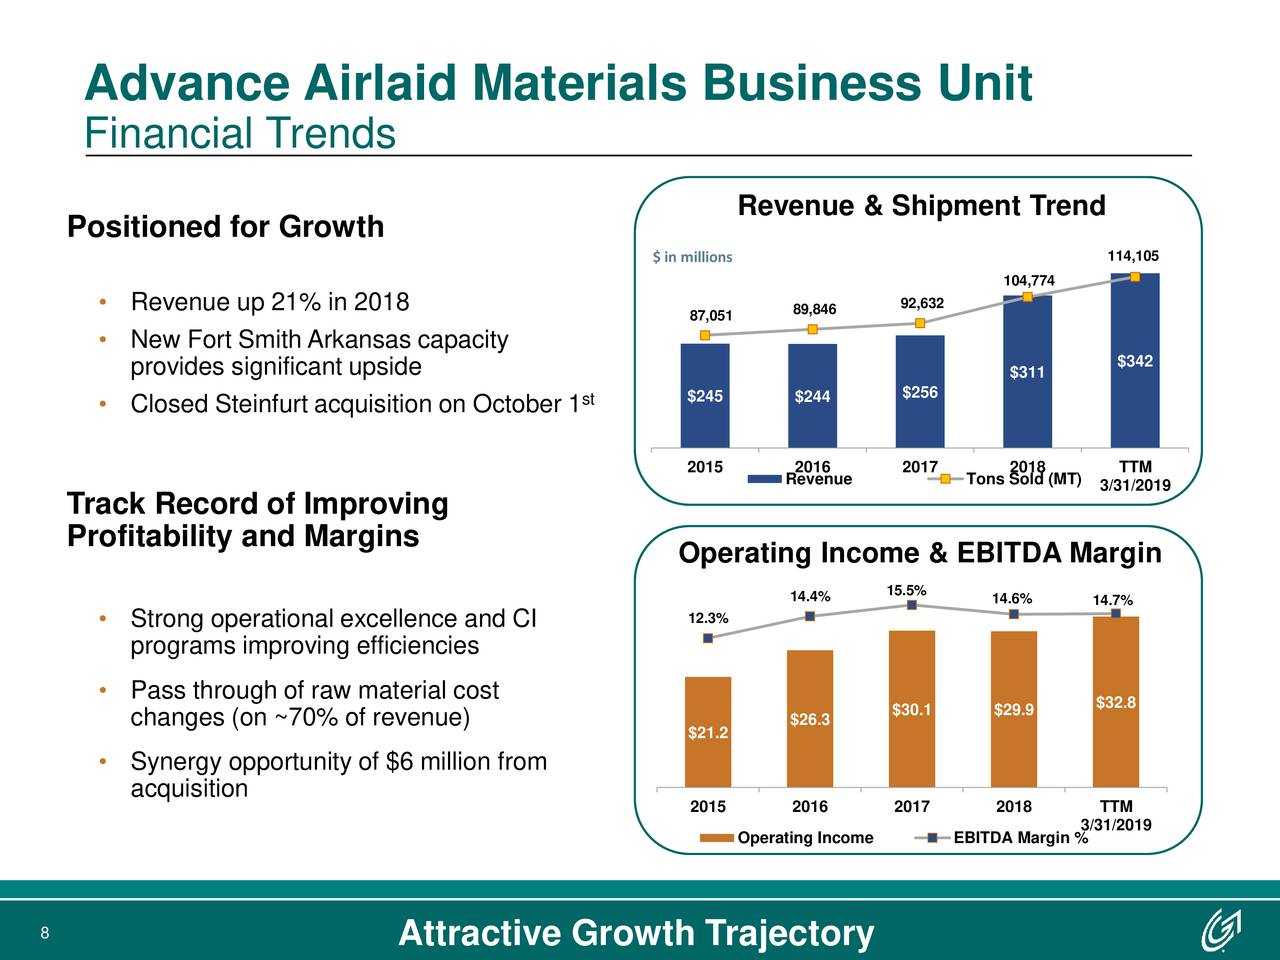 Financial Trends Revenue & Shipment Trend Positioned for Growth $ in millions 114,105 104,774 92,632 • Revenue up 21% in 2018 87,051 89,846 • New Fort Smith Arkansas capacity $342 provides significant upside $311 st $245 $244 $256 • Closed Steinfurt acquisition on October 1 2015 Revenue 2017 Tons Sold (MT) TTM 3/31/2019 Track Record of Improving Profitability and Margins Operating Income & EBITDA Margin 14.4% 15.5% 14.6% 14.7% • Strong operational excellence and CI 12.3% programs improving efficiencies • Pass through of raw material cost $32.8 changes (on ~70% of revenue) $26.3 $30.1 $29.9 $21.2 • Synergy opportunity of $6 million from acquisition 2015 2016 2017 2018 TTM Operating Income EBITDA Margin %31/2019 8 Attractive Growth Trajectory